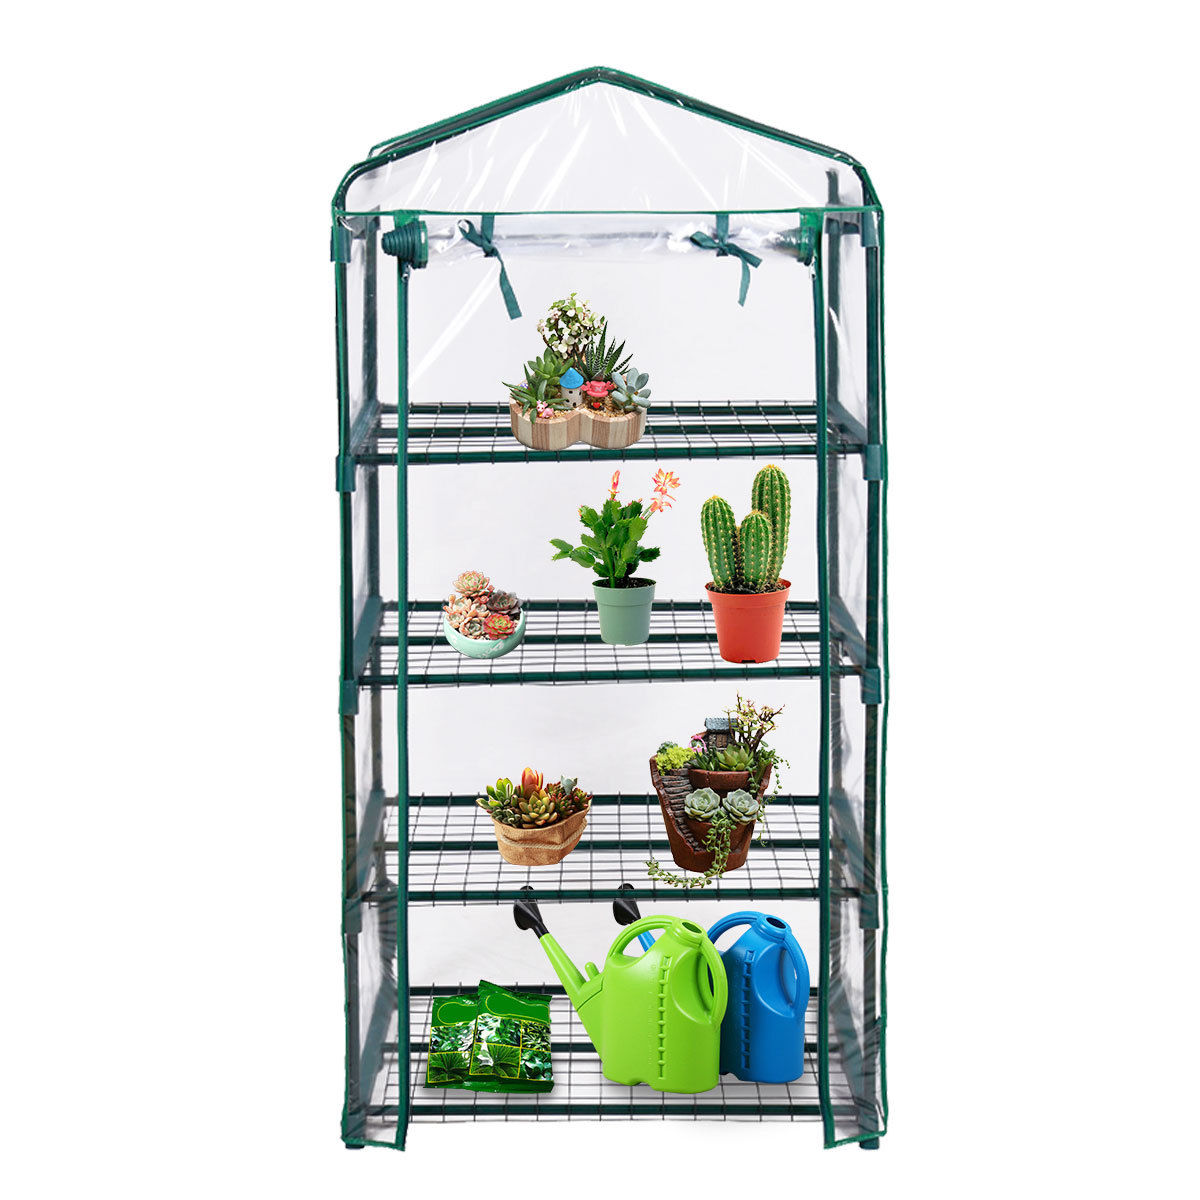 Costway Portable Mini Walk In Outdoor 4 Shelves Greenhouse by Costway